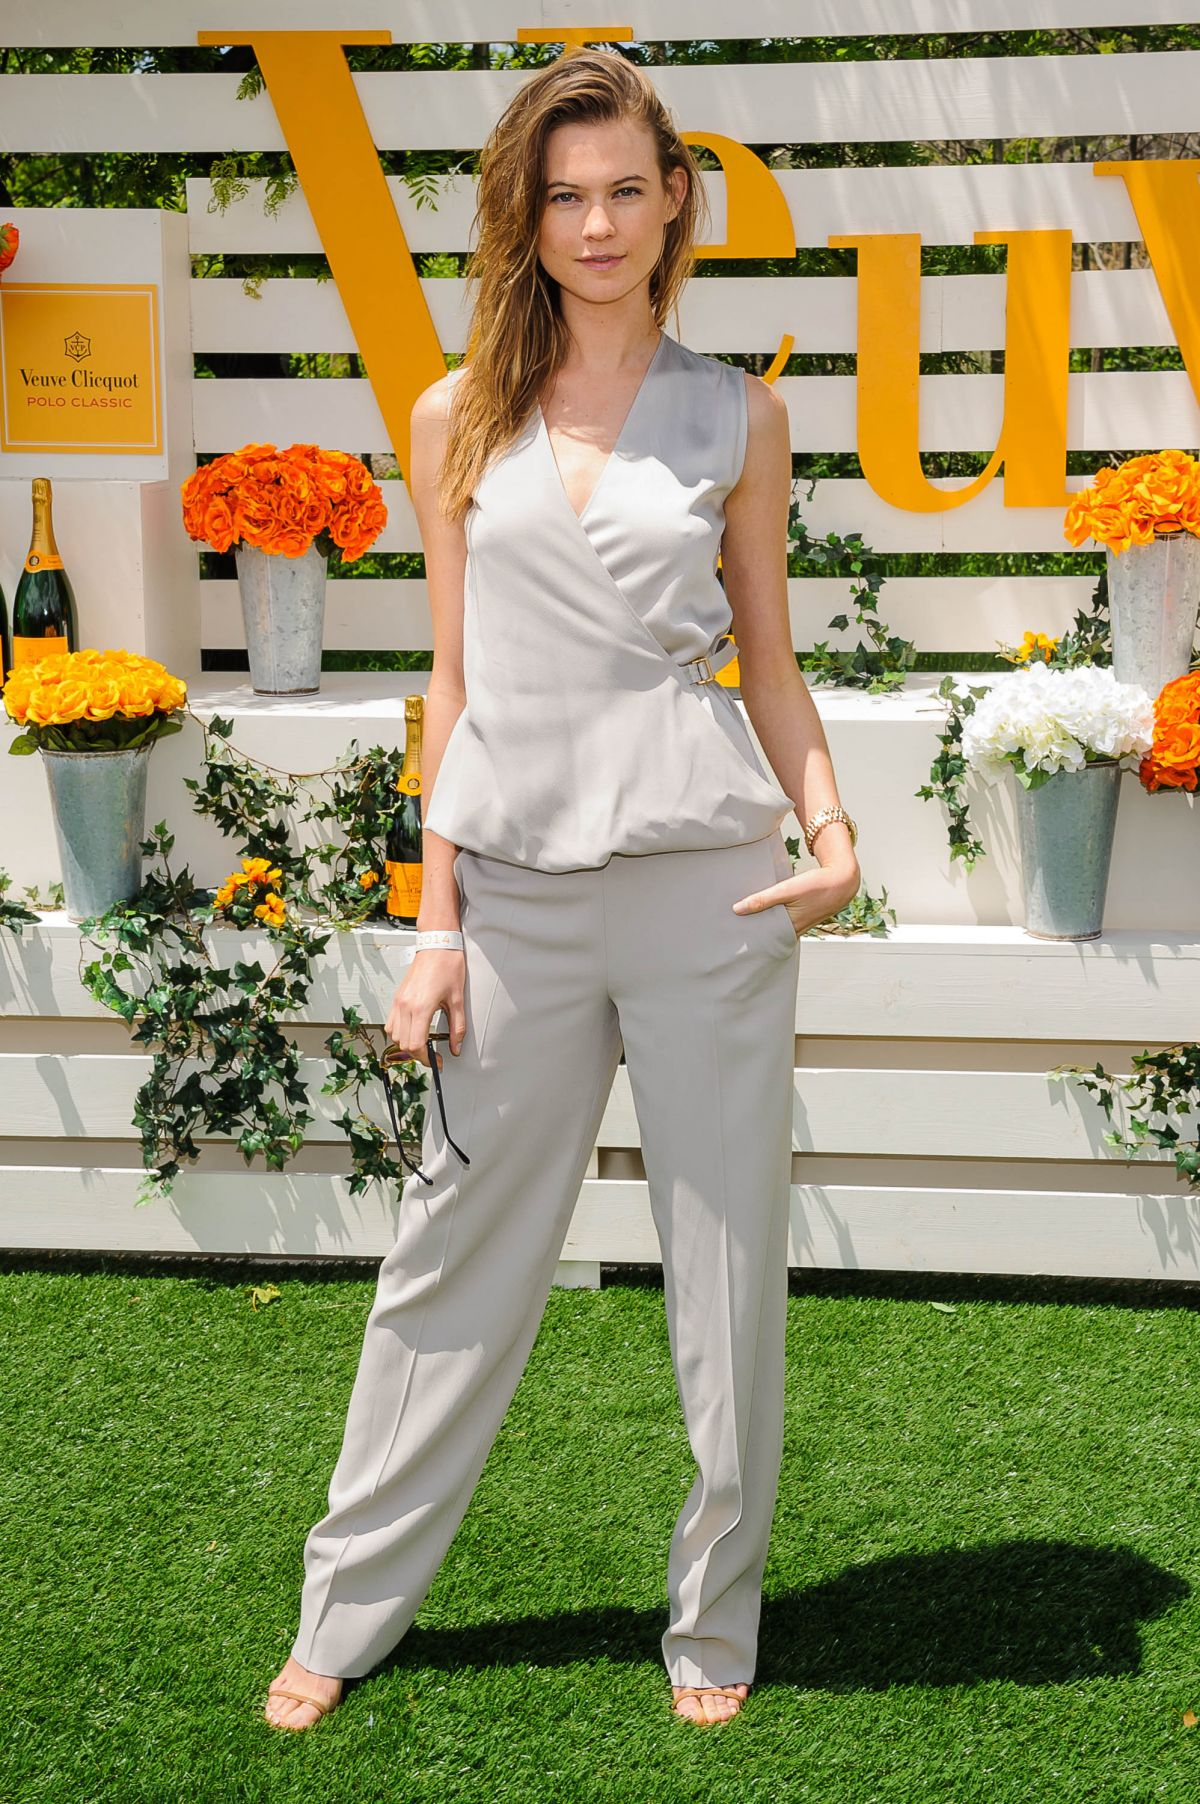 Behati Prinsloo At The Seventh Annual Veuve Clicquot Polo Classic In Jersey City